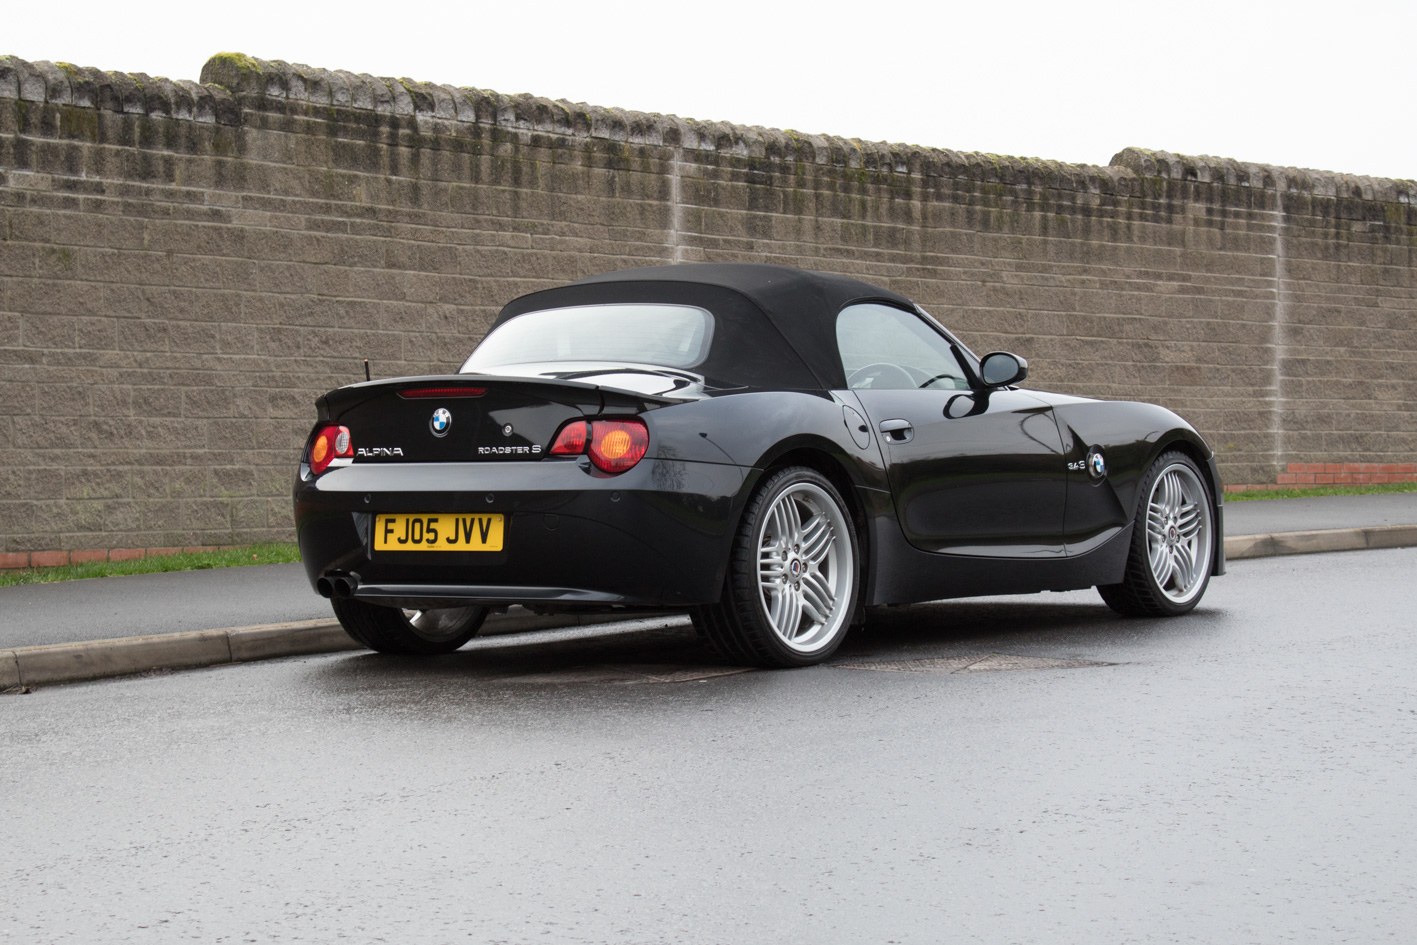 2005 Bmw Z4 Alpina Roadster 3 4 S Cars Of Somerset